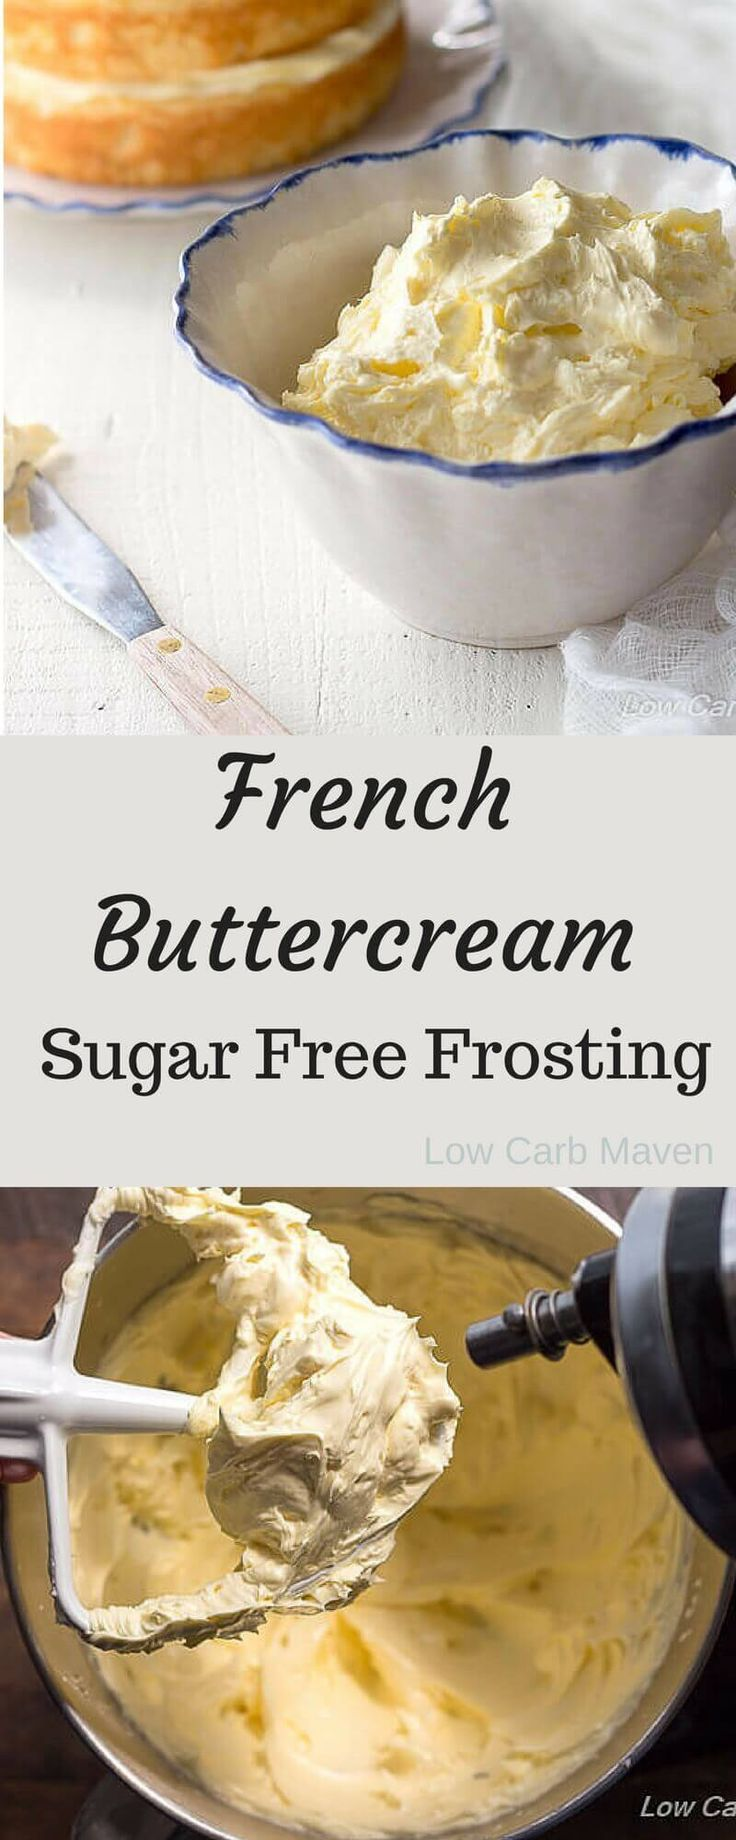 French Buttercream Sugar Free Frosting - a silky frosting perfect for low carb keto diets(Low Carb Sauce Honey)